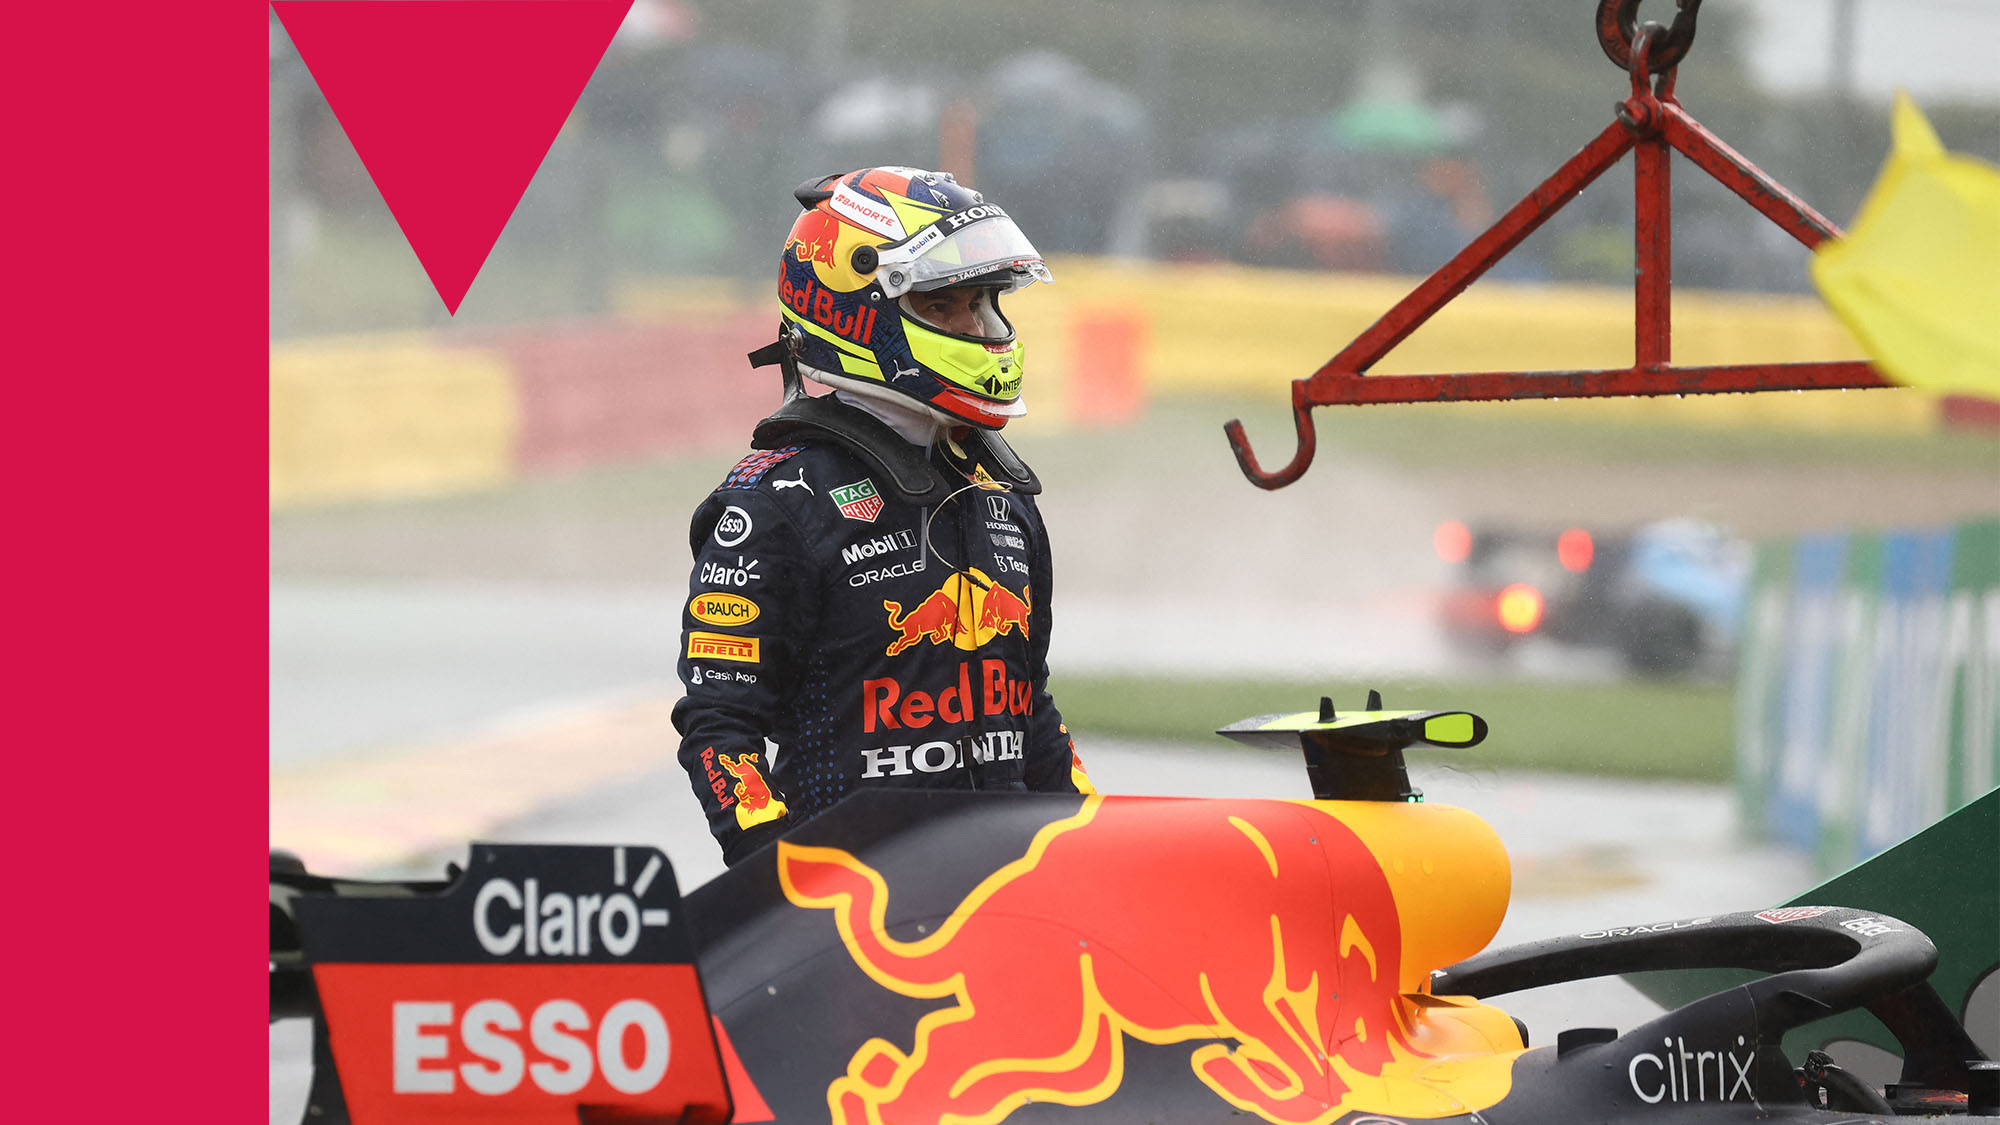 Red Bull's Mexican driver Sergio Perez exits his car after crashing in a warm up run before the Formula One Belgian Grand Prix at the Spa-Francorchamps circuit in Spa on August 29, 2021. (Photo by Kenzo Tribouillard / AFP) (Photo by KENZO TRIBOUILLARD/AFP via Getty Images)